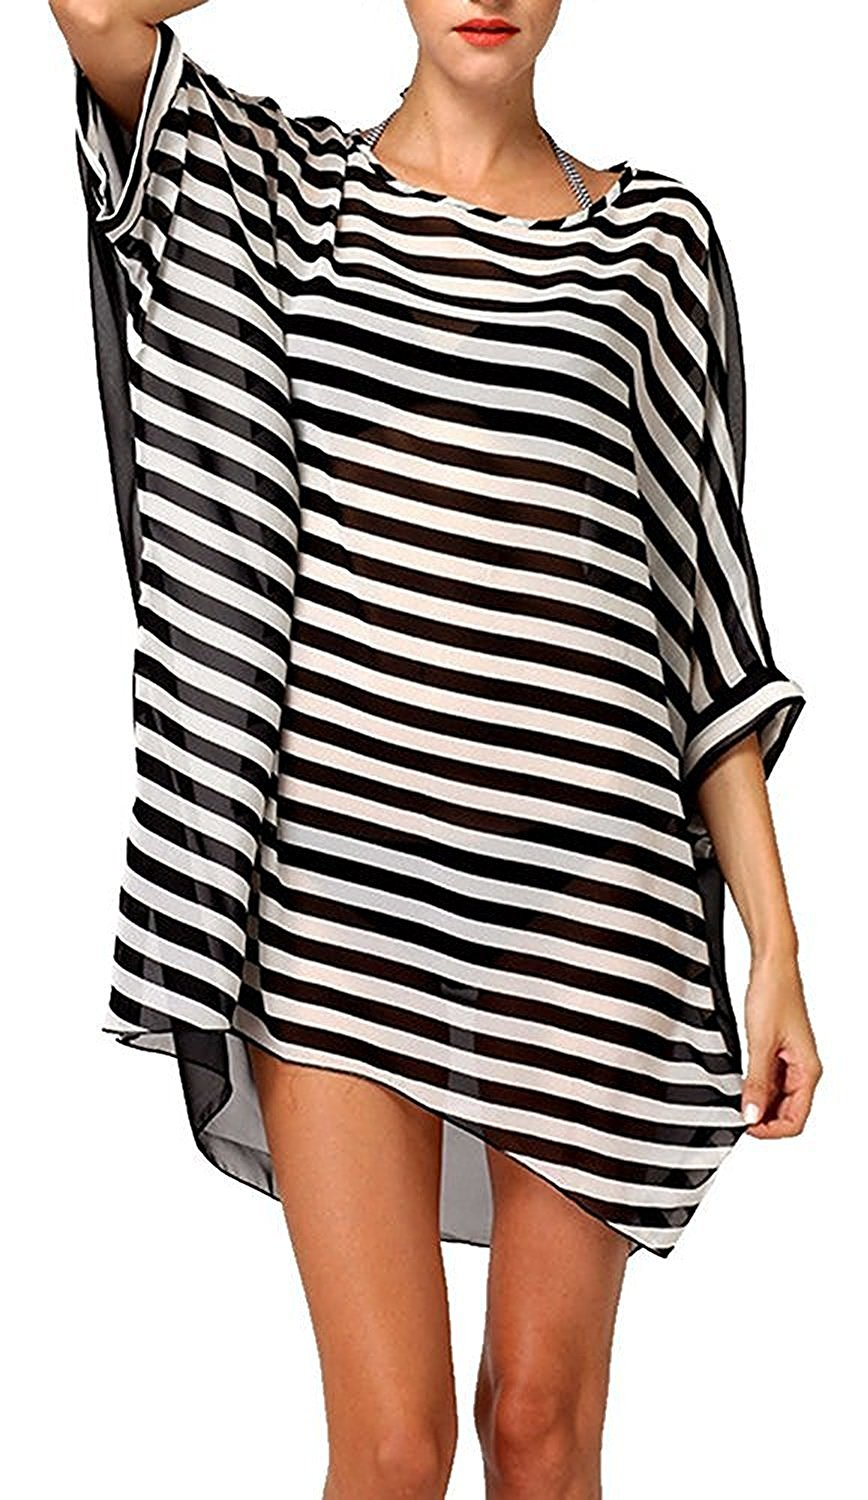 413363dbe5 Womens Striped Bathing Suit Cover Ups Kimono Swimsuit Coverups